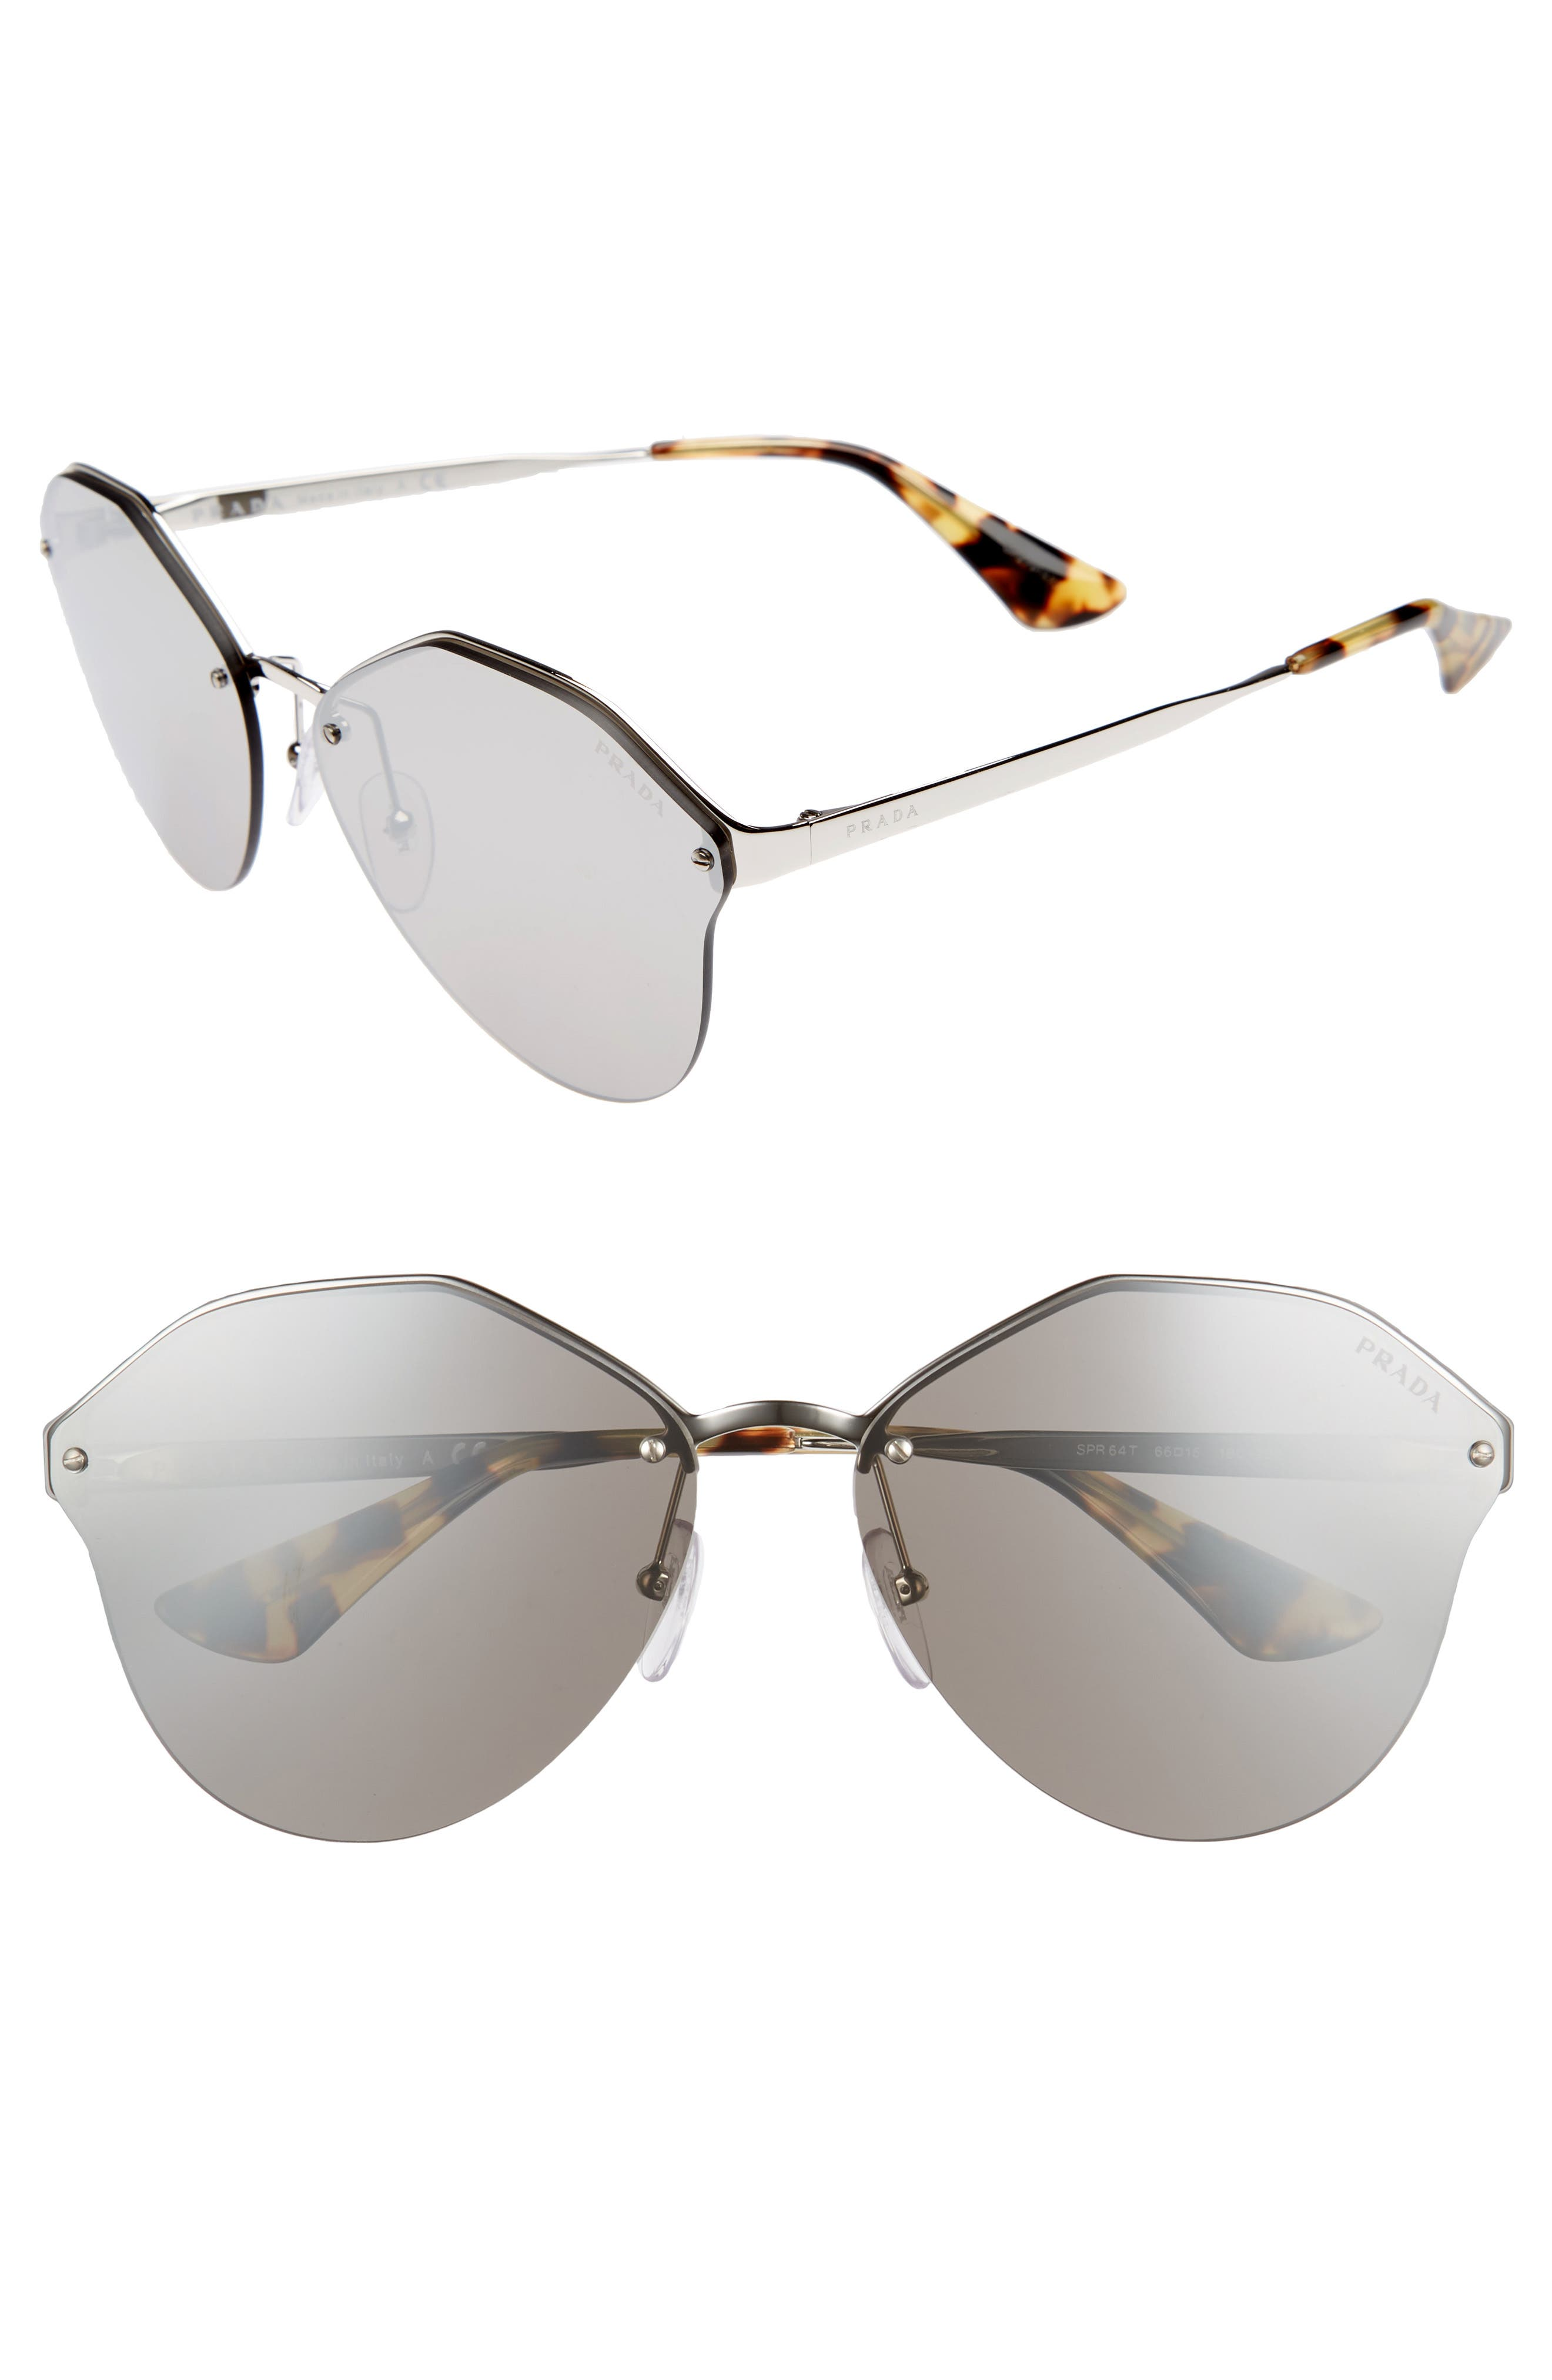 66mm Oversize Rimless Sunglasses,                             Main thumbnail 1, color,                             Brown Mirror